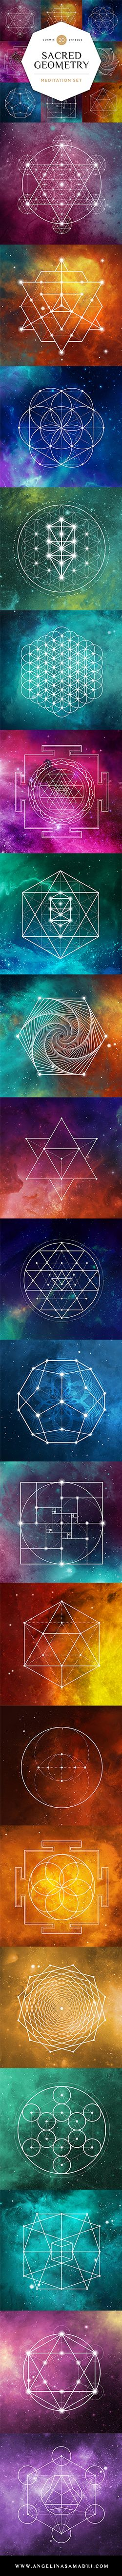 Studies have shown that meditating on sacred geometry can help strengthen the connection between the right & left hemispheres of the brain and remind you of your own infinite nature. https://www.angelina-samadhi.com/shop/sacred-geometry-meditation-set-1